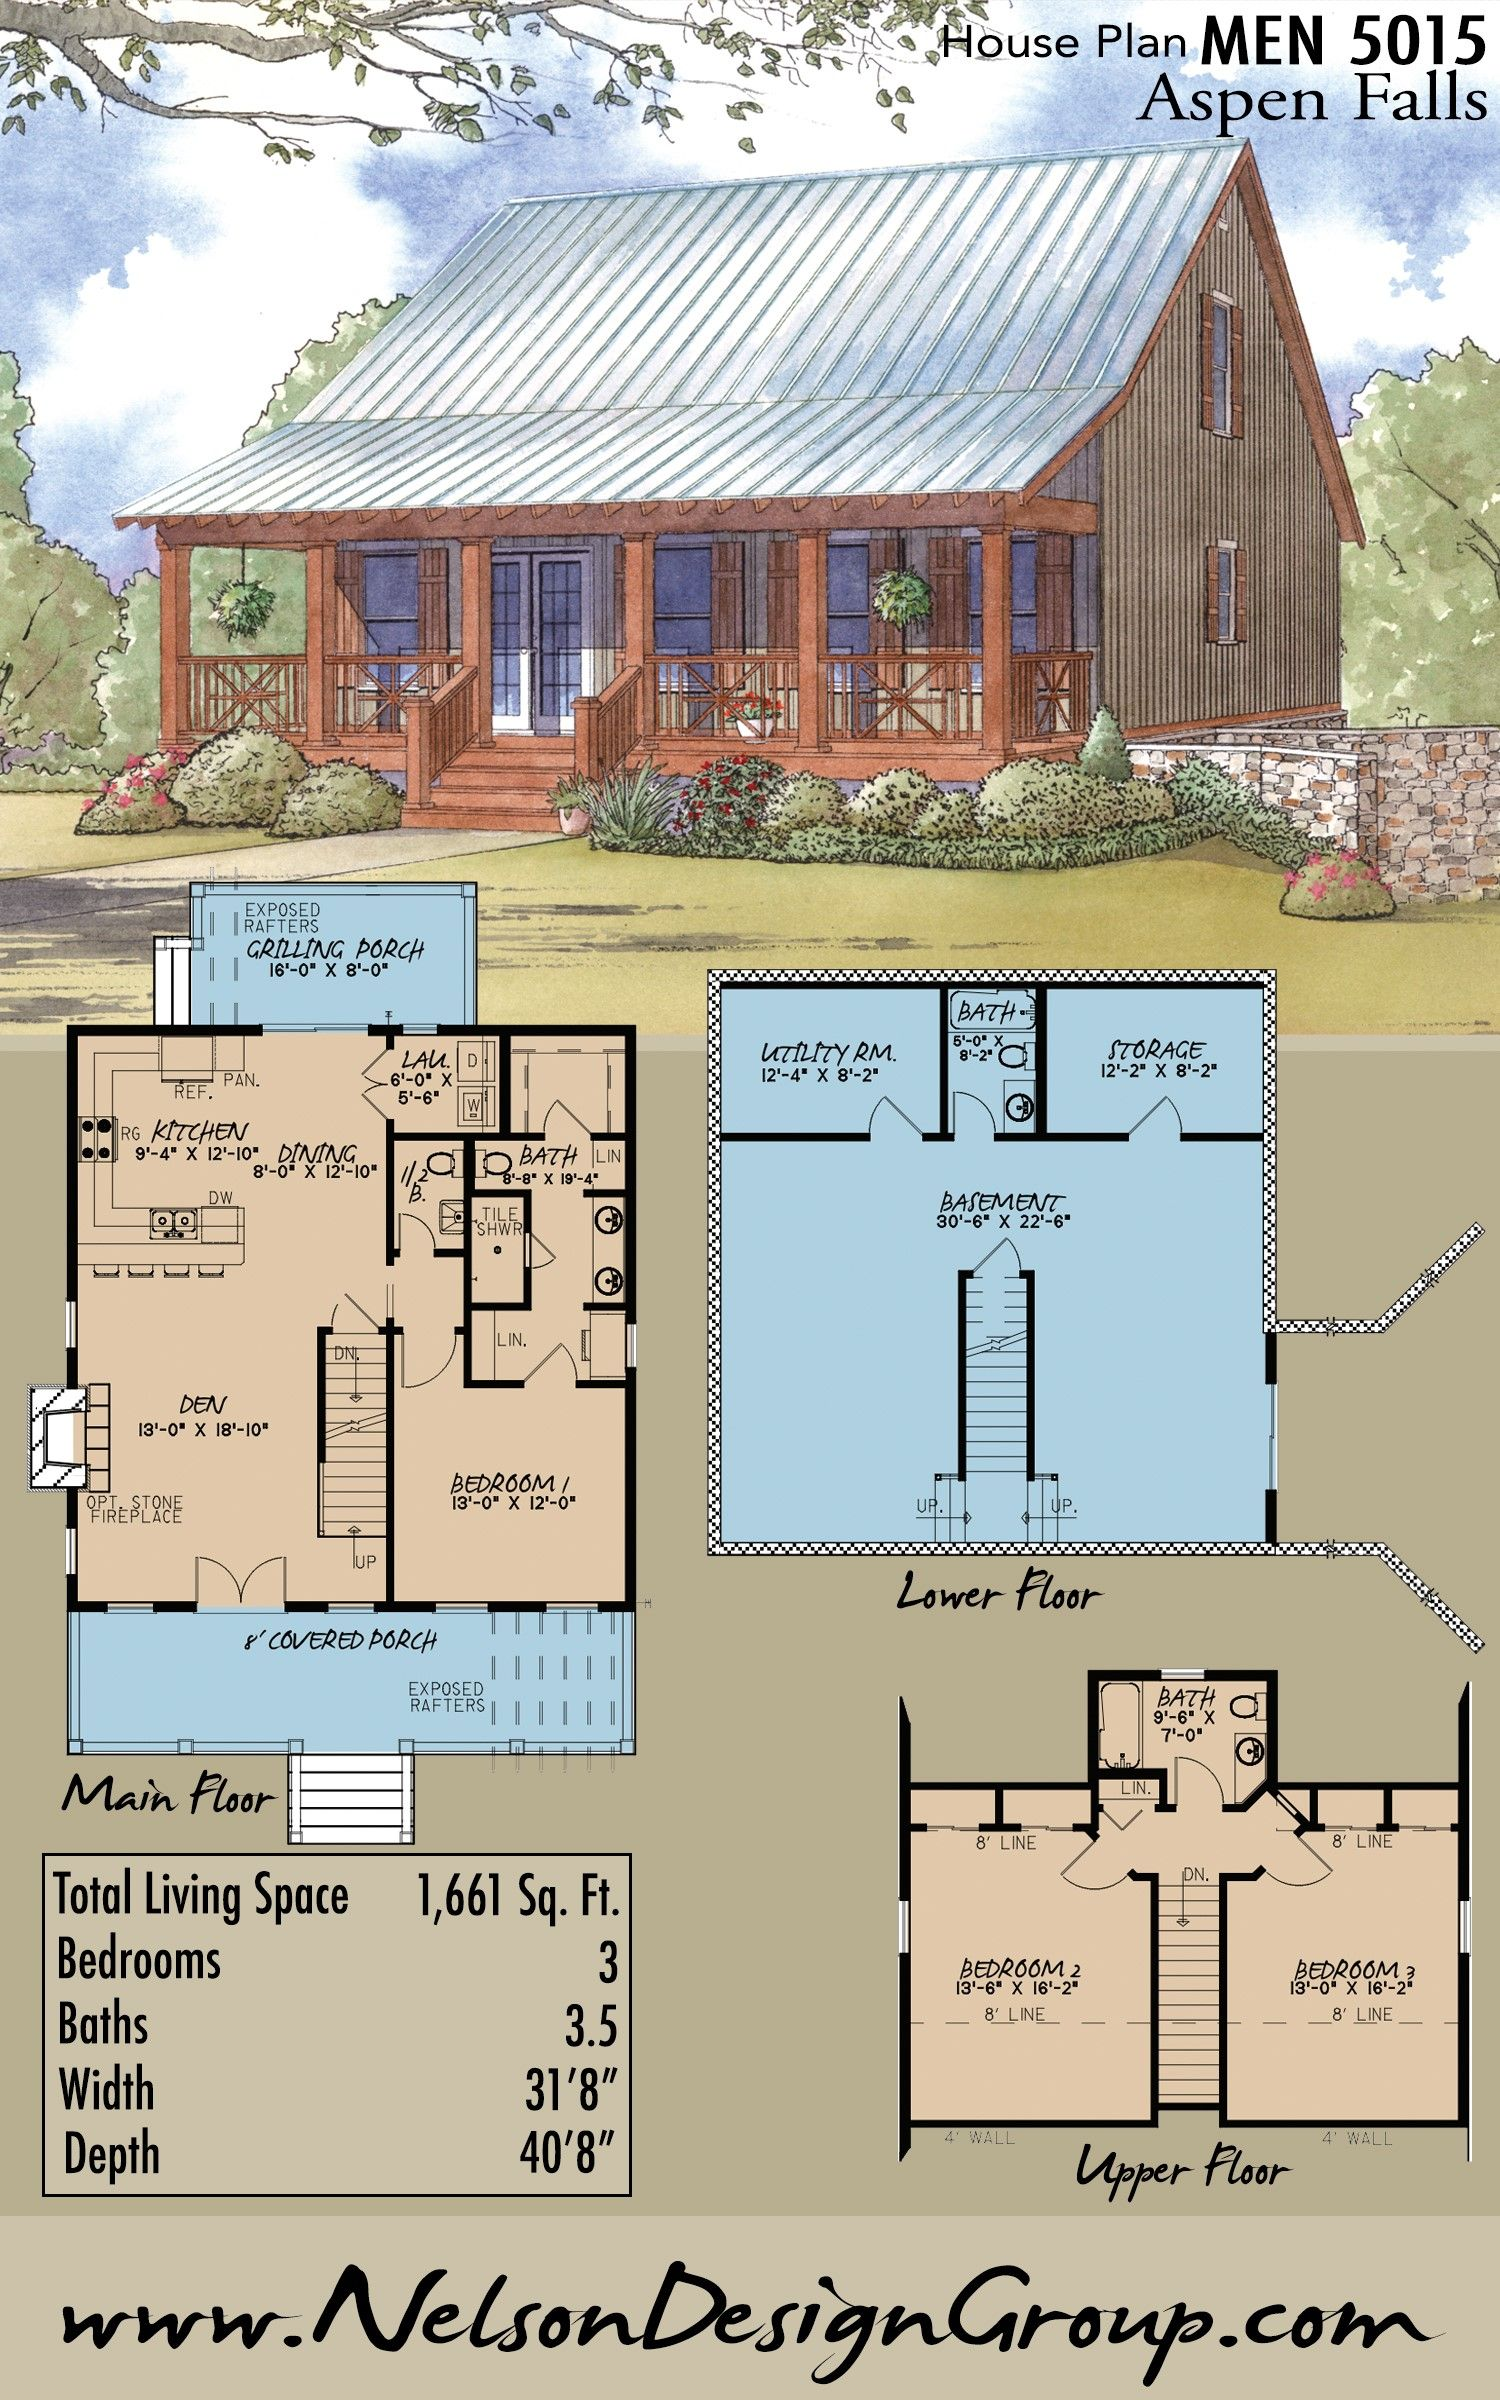 Houseplan Homeplan Homedesign Rustic Rusticstyle Cabin Log Cabin House Plans Beautiful Cabins House Plan With Loft